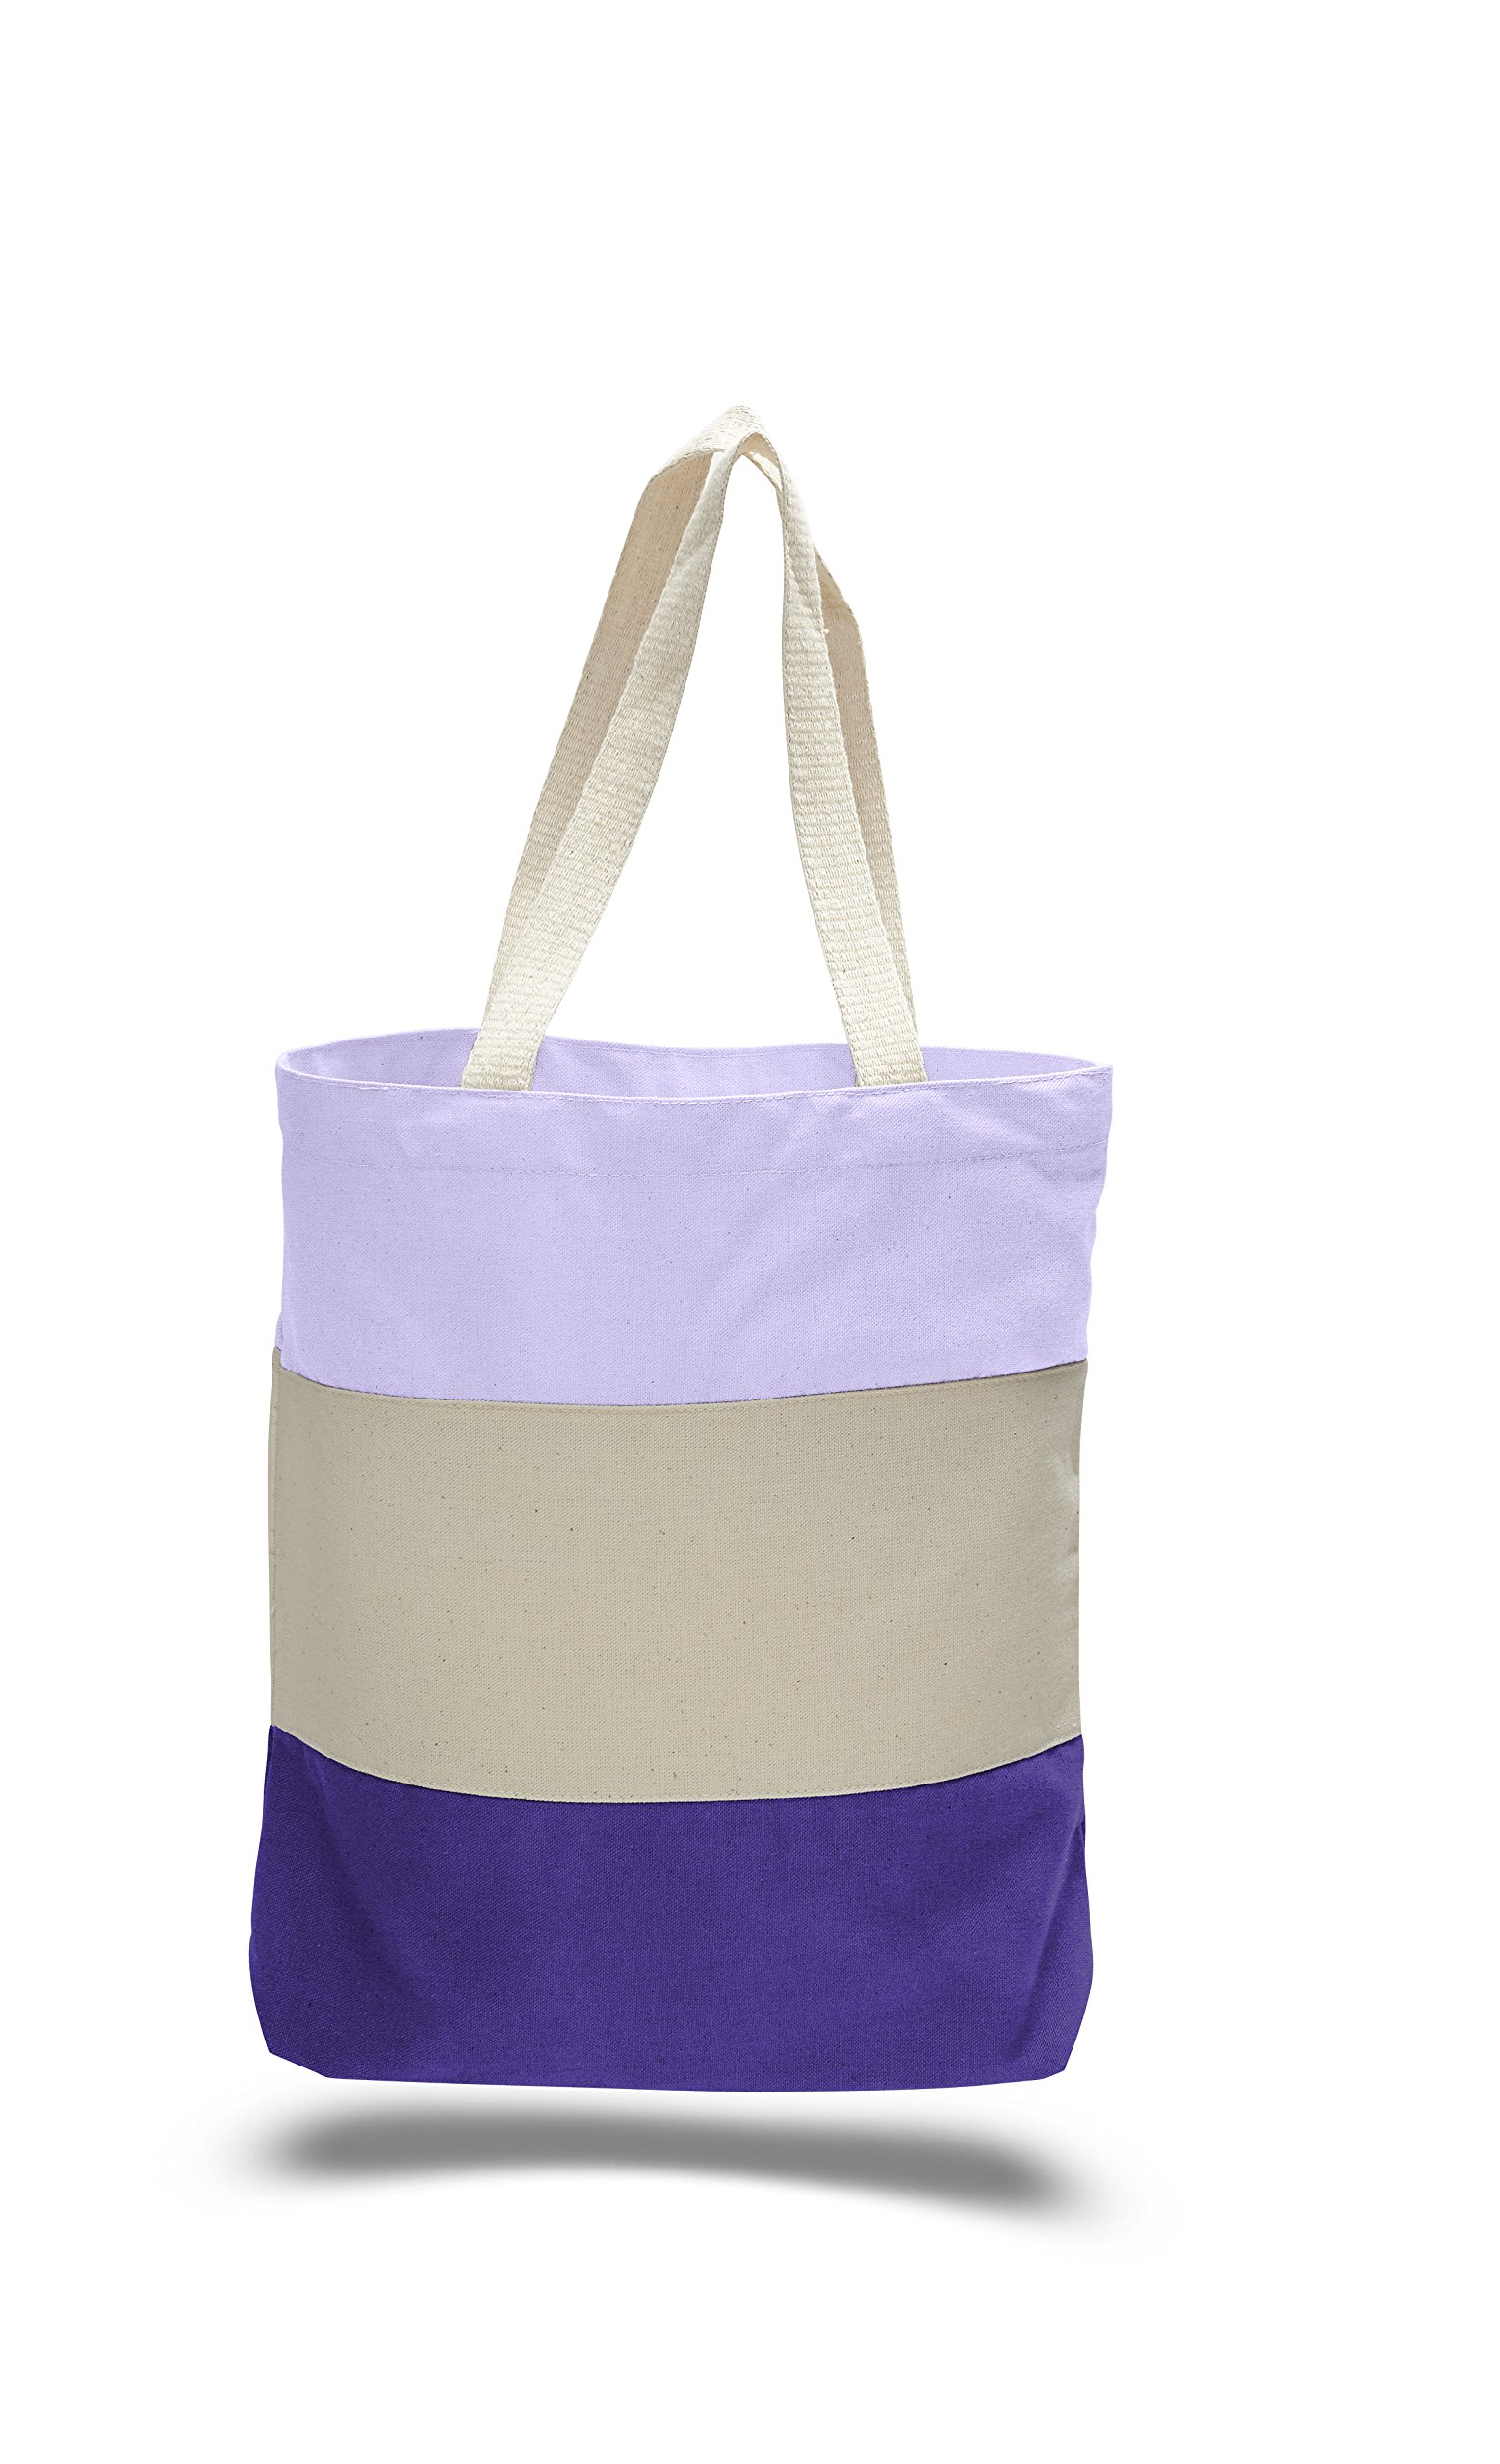 Set of 2 - Fancy Street Style Canvas Shoulder Bags, Reusable Tote Bags, Beach Bags by BagzDepot (Purple)